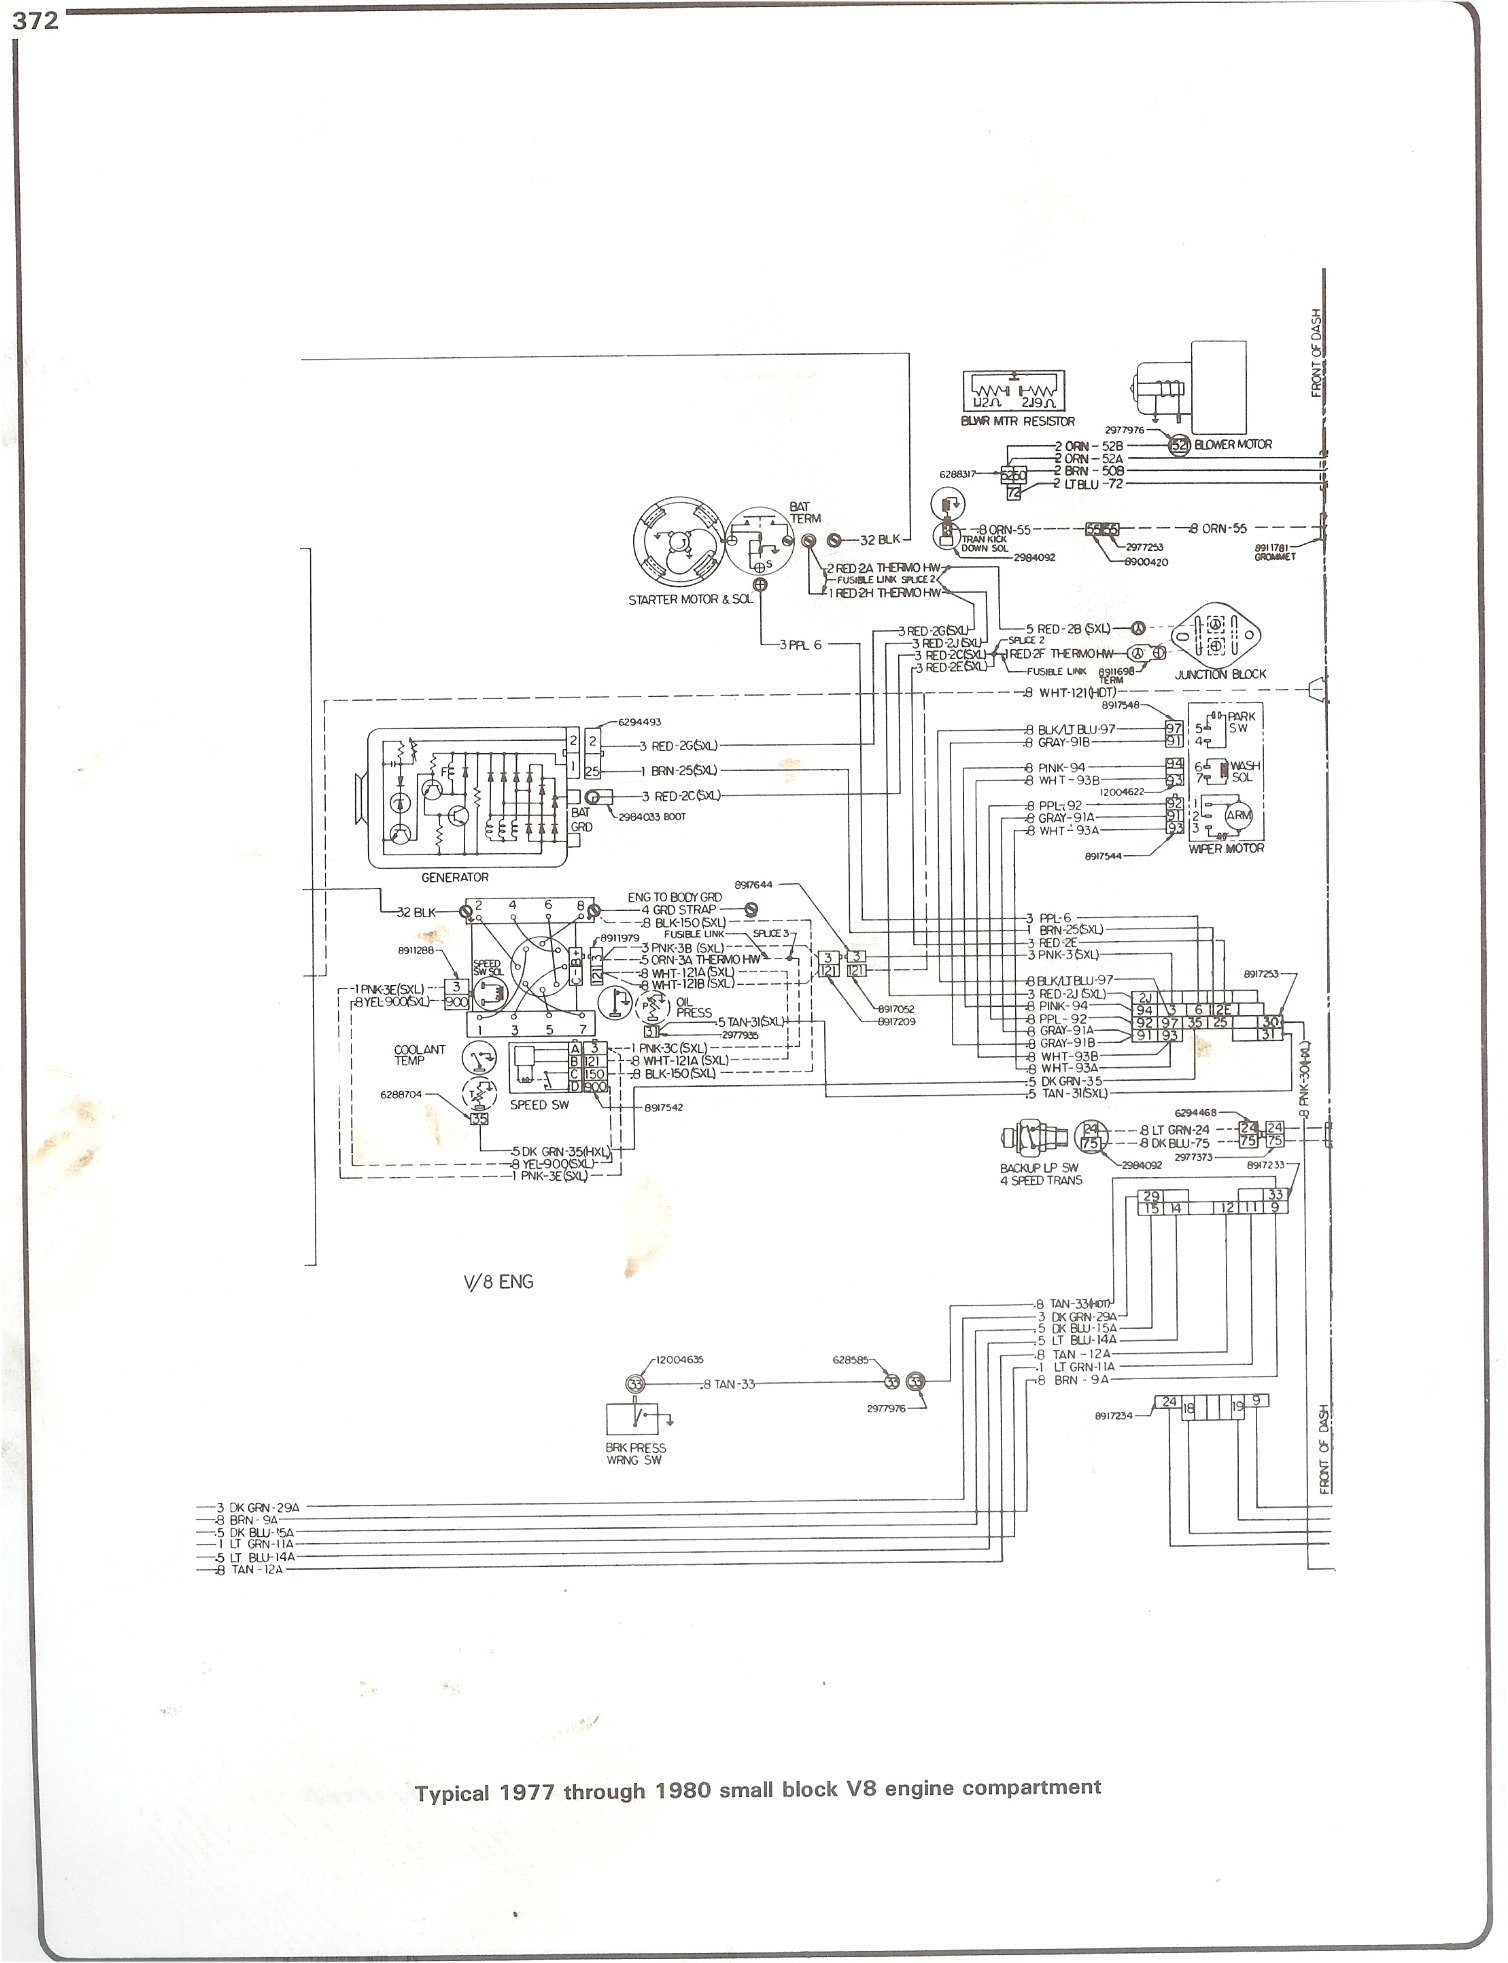 need wiring diagram for 76 chevy c20 pickup